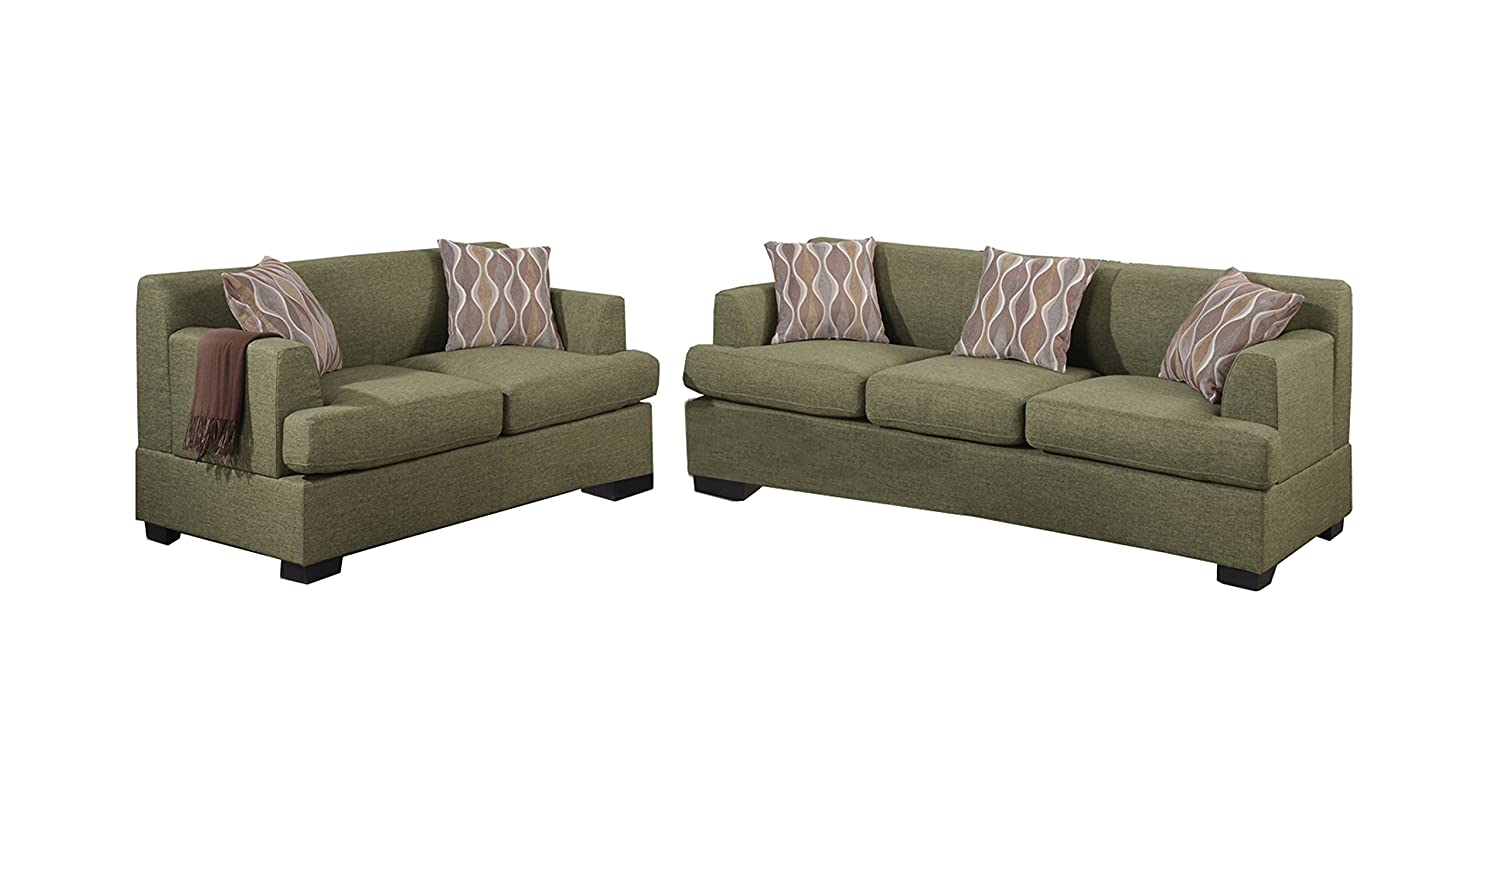 Poundex Bobkona Baldwin Blended Linen 2-Piece Sofa and Loveseat Set - Peridot